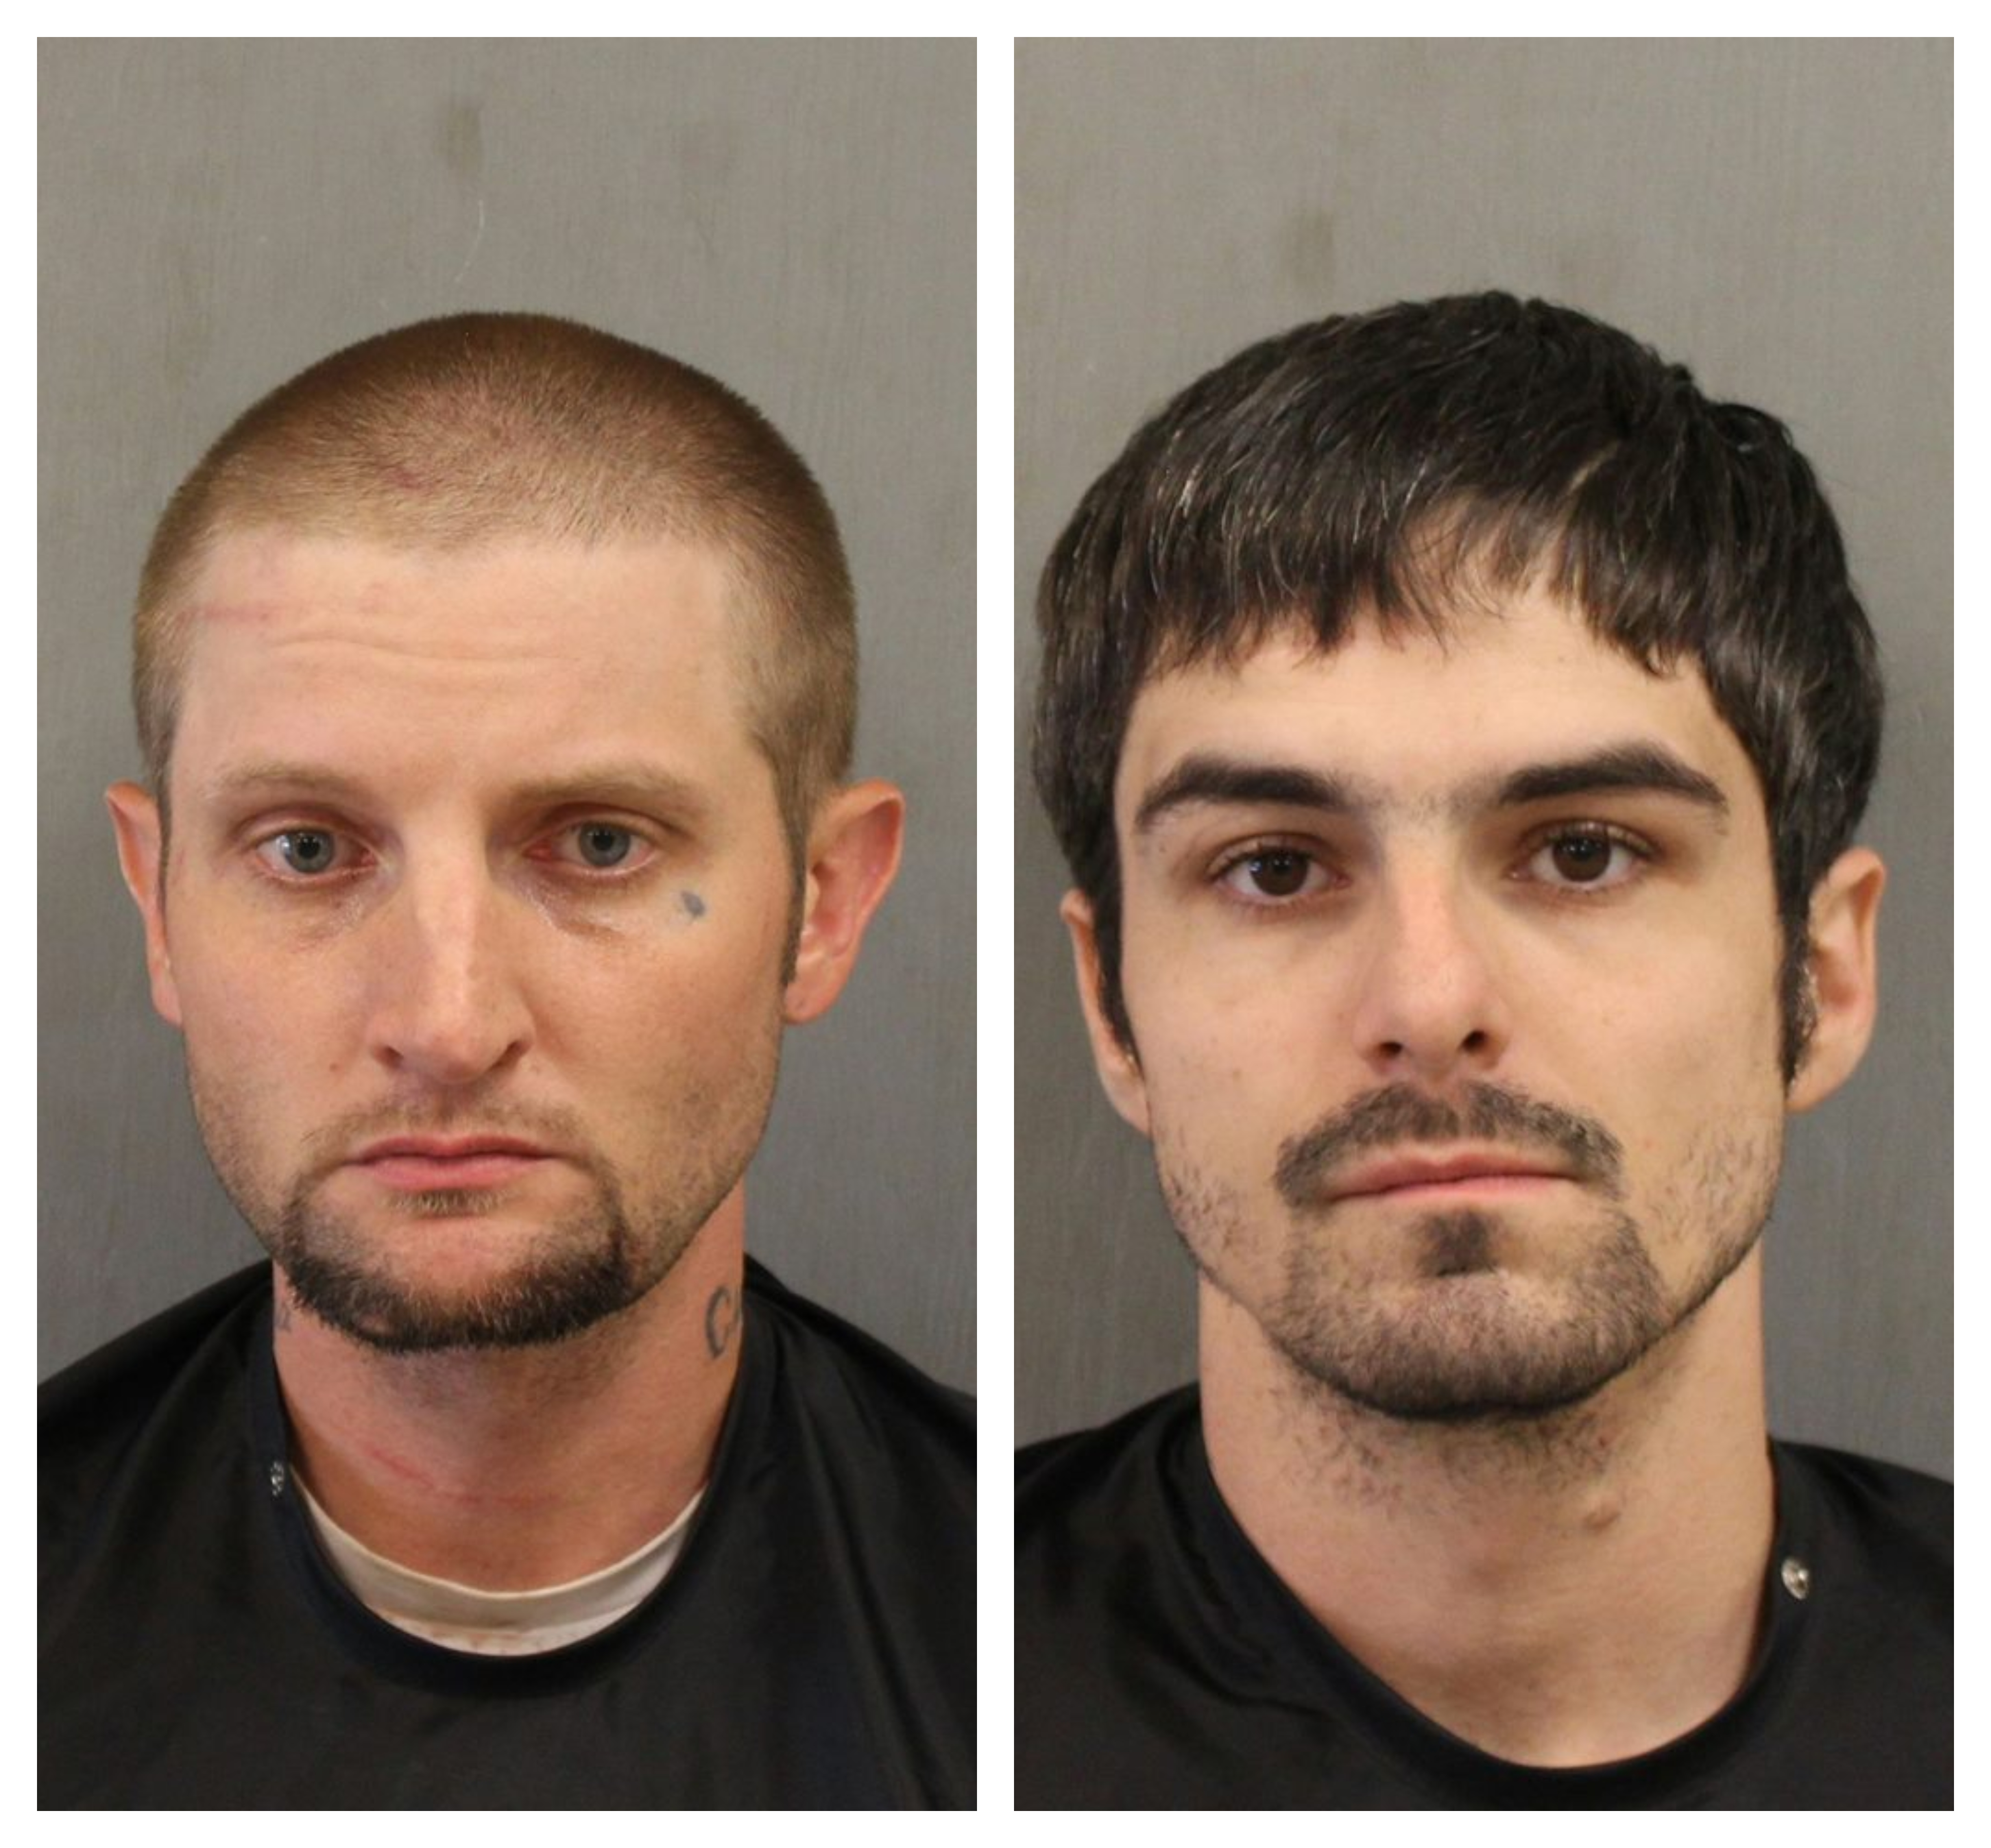 <p>Deputies say that 29-year-old Andrew William McManus and 30-year-old Andrew Lee Tuten were arrested Monday morning and charged with trafficking methamphetamine.</p>